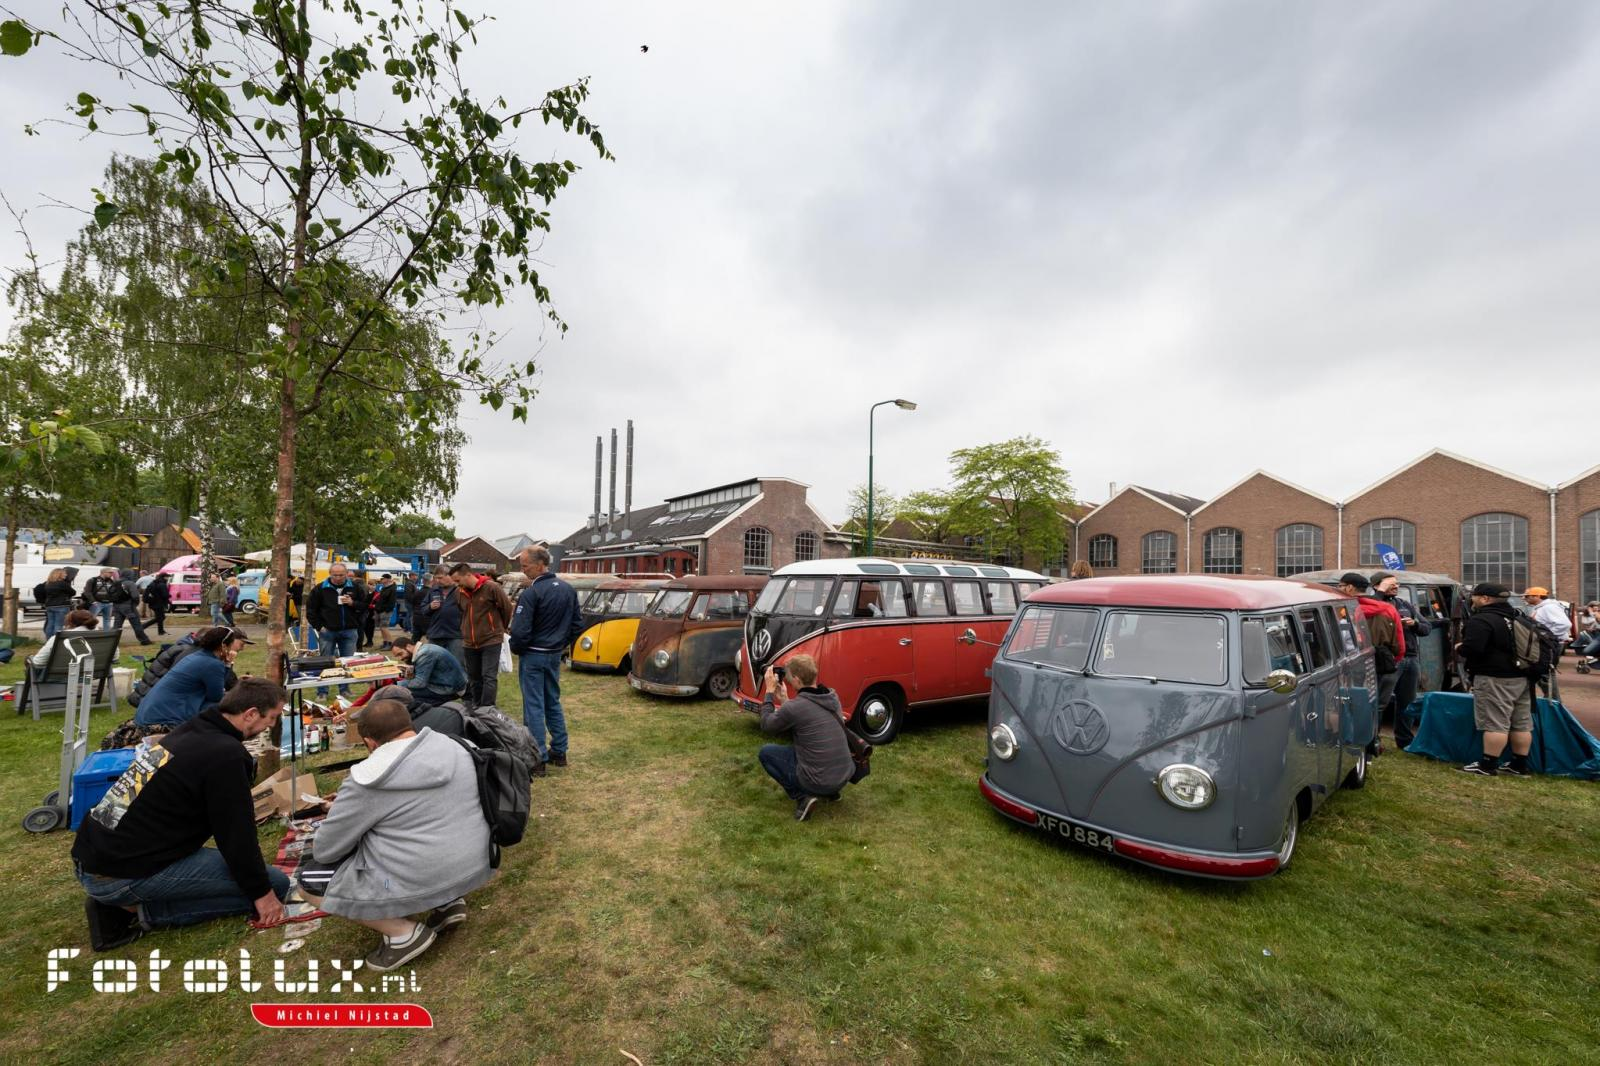 2nd European Barndoor Gathering & Vintage VW Show | 19-20 May 2018